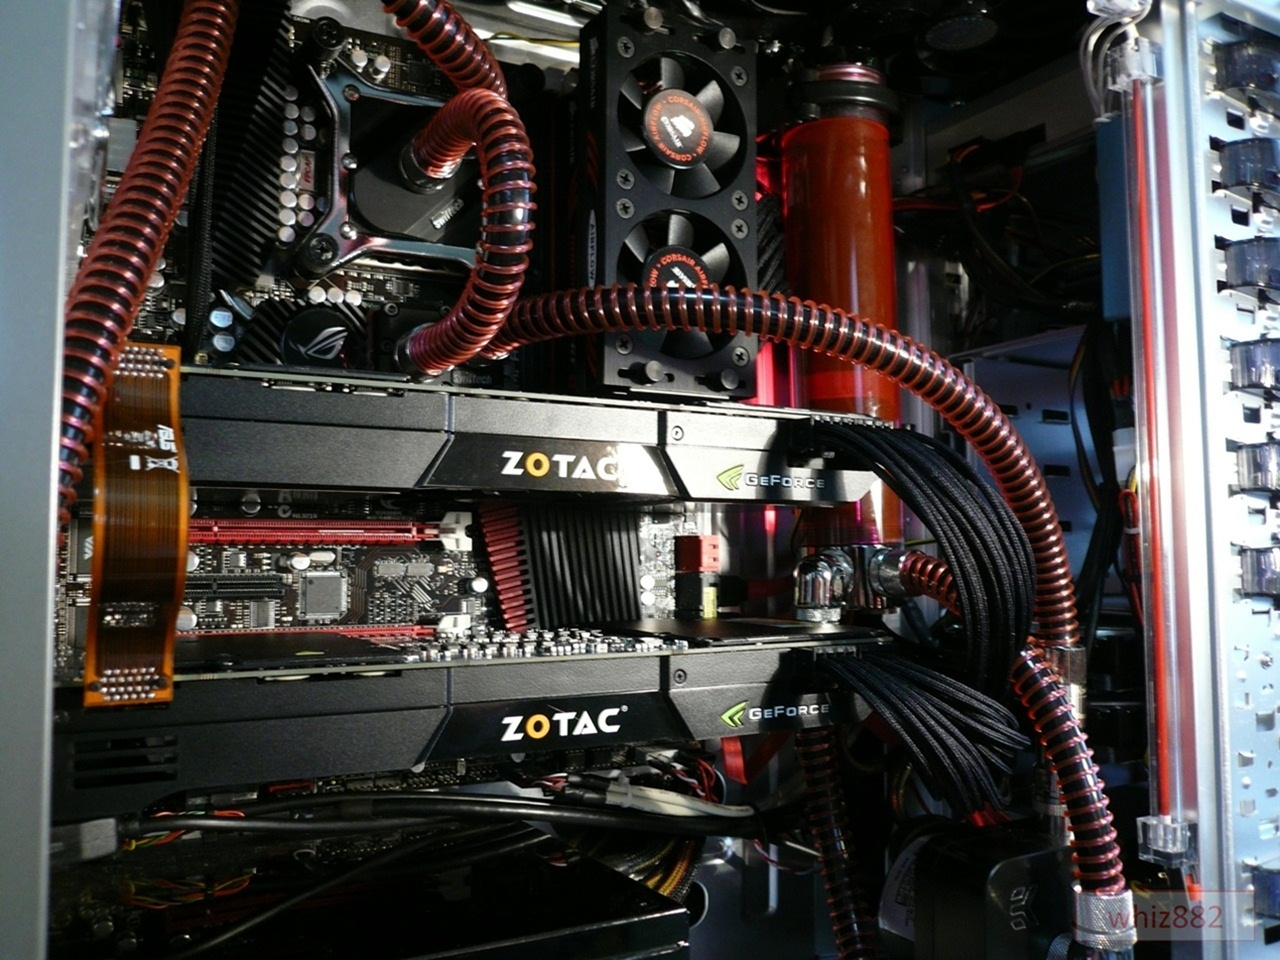 Using more than two displays on one graphics card has been amd 2019s significant advantage, but the gtx 590 can finally